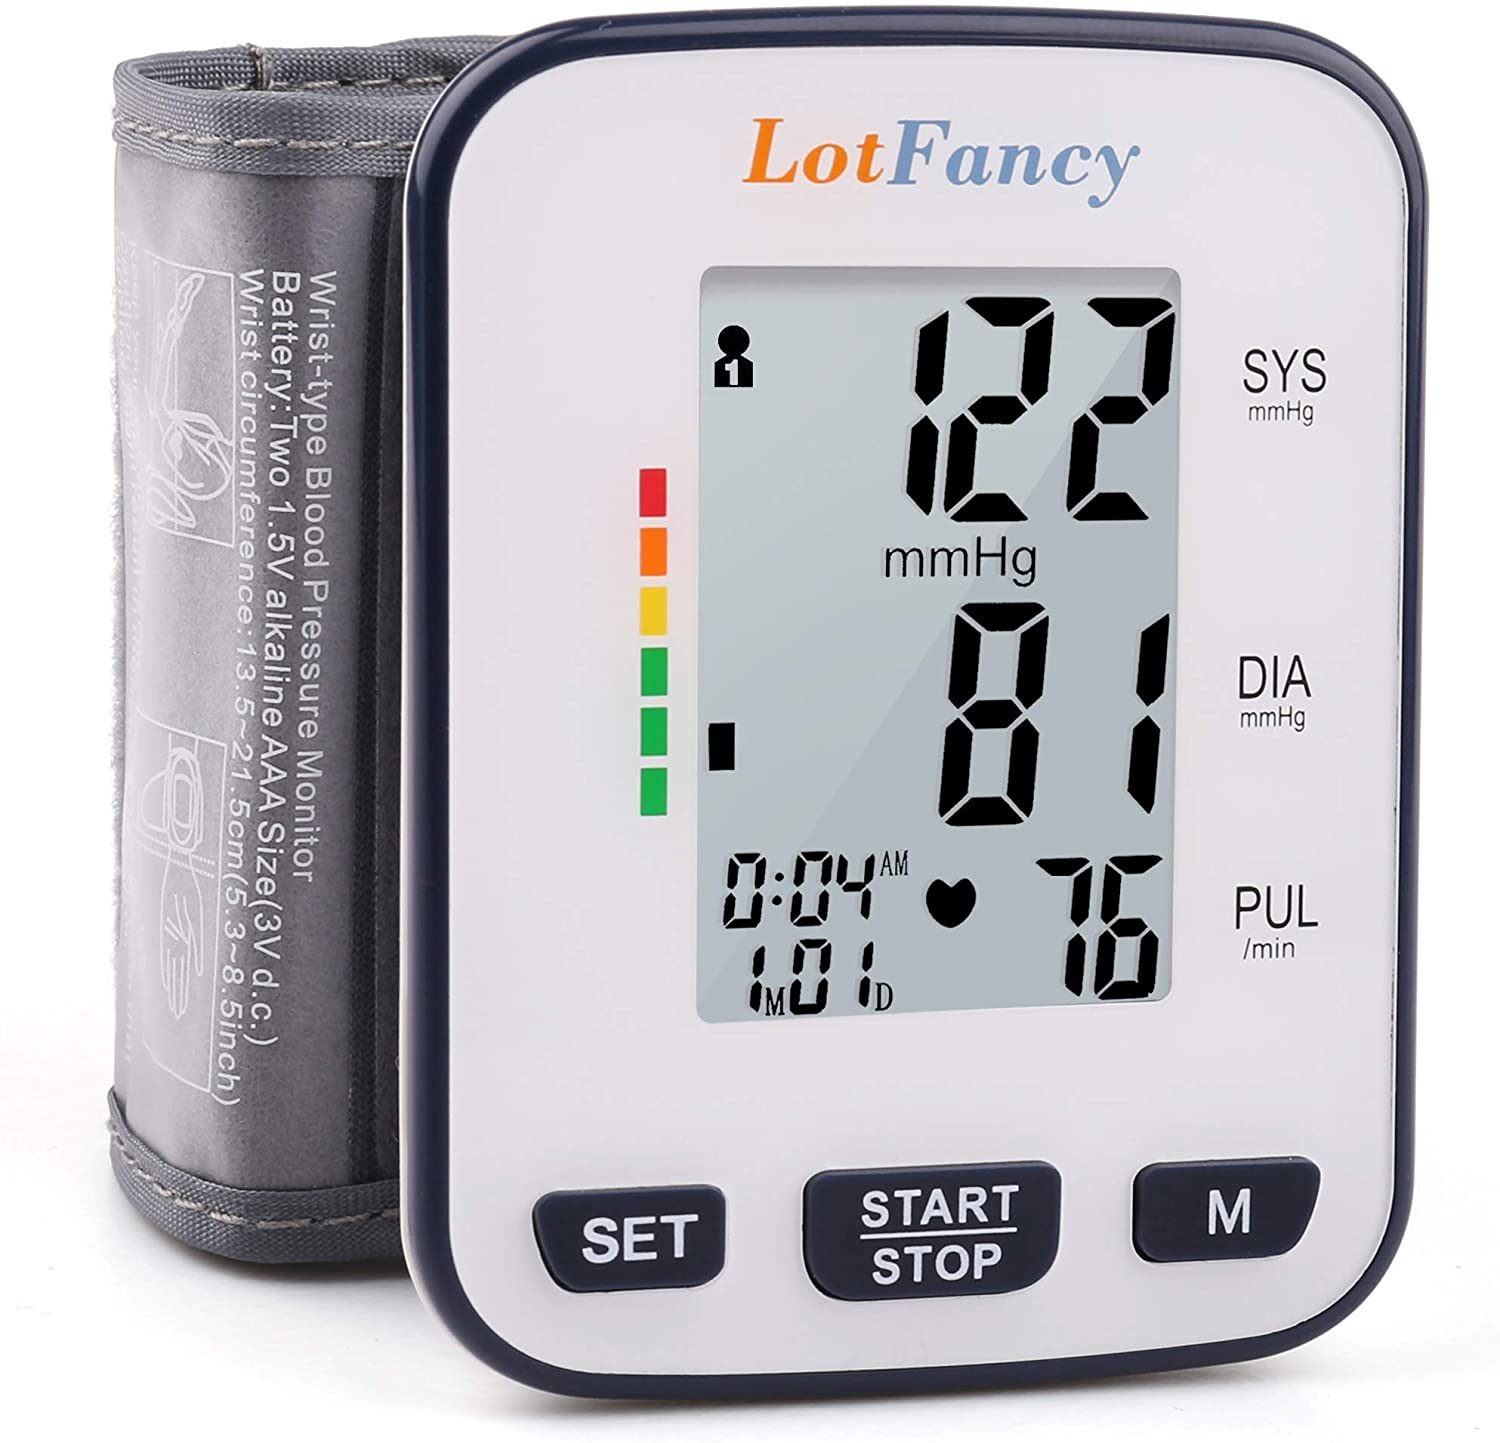 Wrist Blood Pressure Monitor Cuff by LotFancy, 2 x 120 Reading Memory, BP Wrist Cuff 5.3 – 8.5 , Digital Blood Pressure Monitor with Wristband Large LCD Display, Portable Case Included